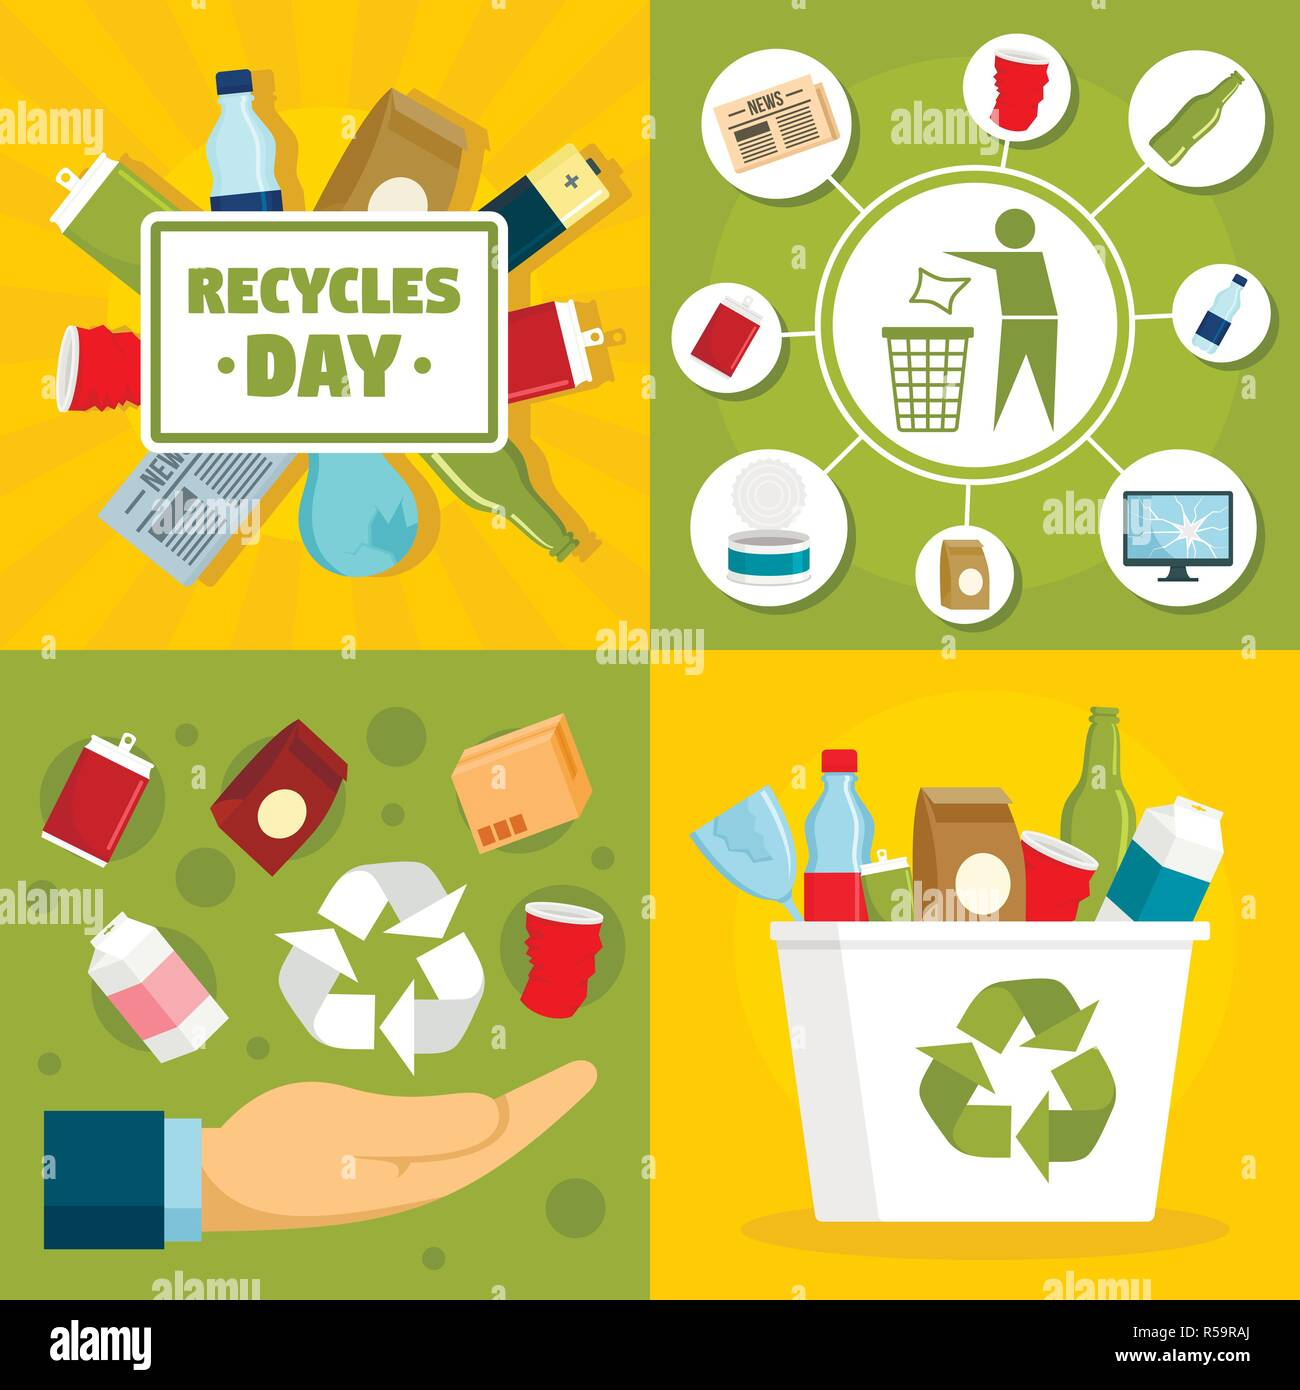 Recycles day banner set. Flat illustration of recycles day vector banner set for web design - Stock Image